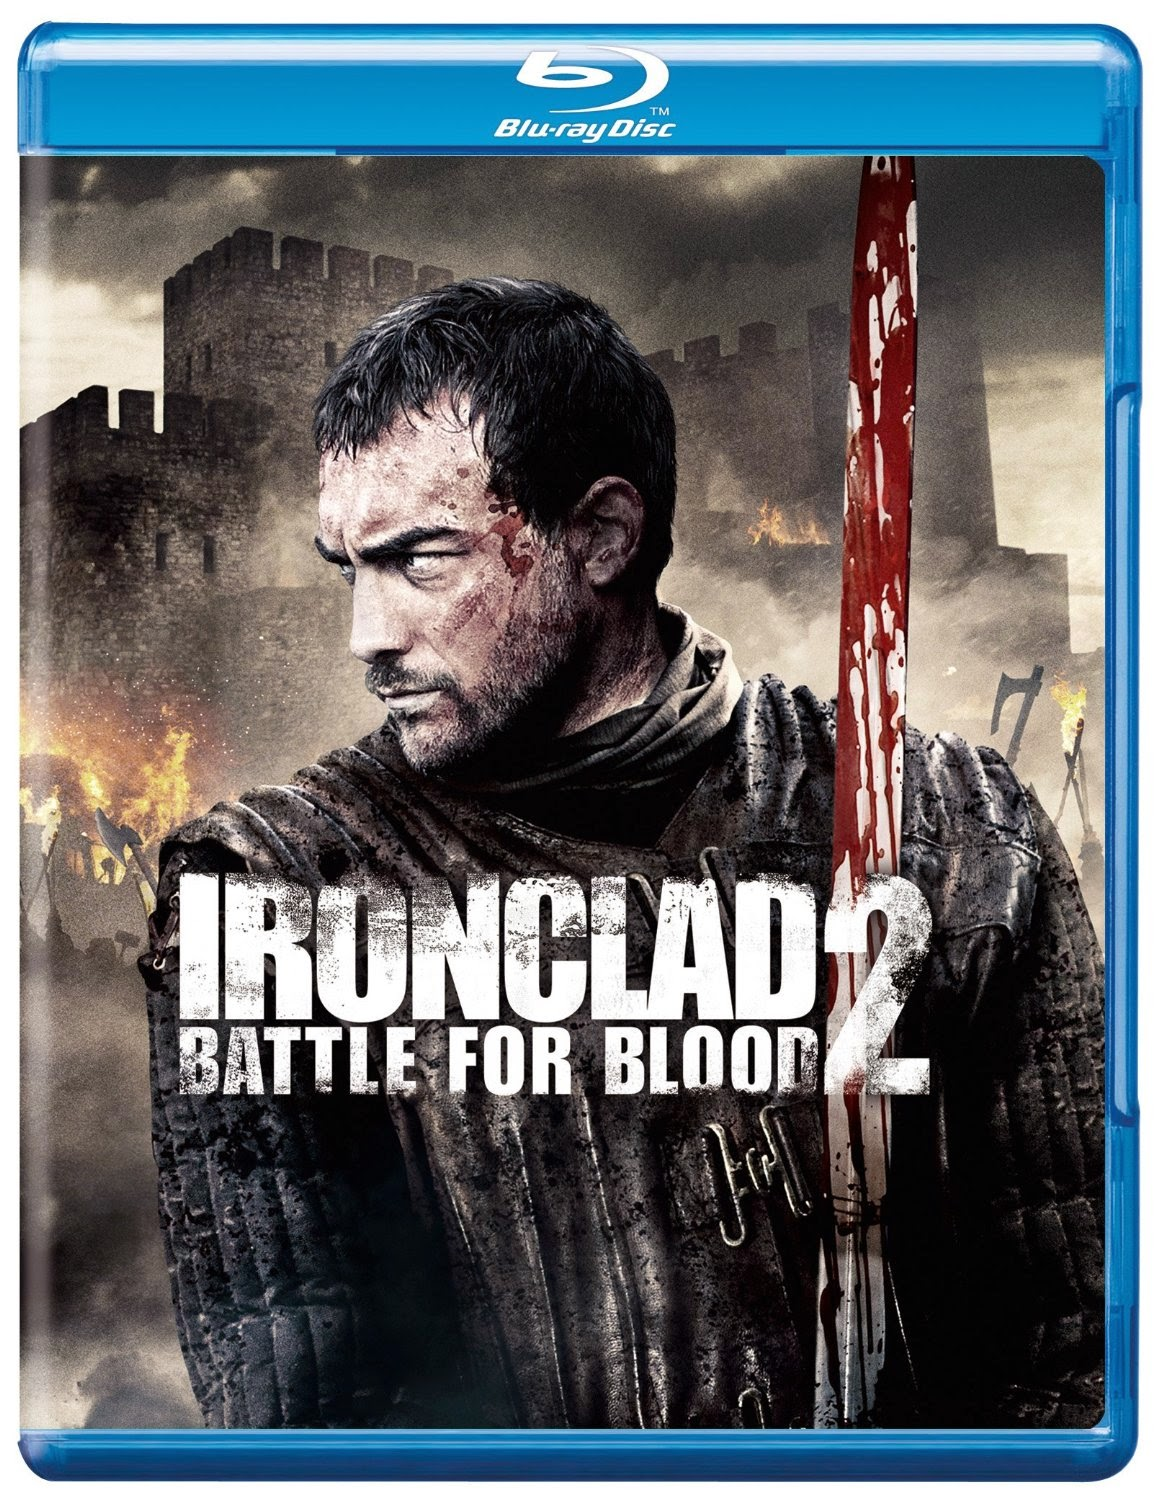 Download film incrolad 2: battle for blood 2014